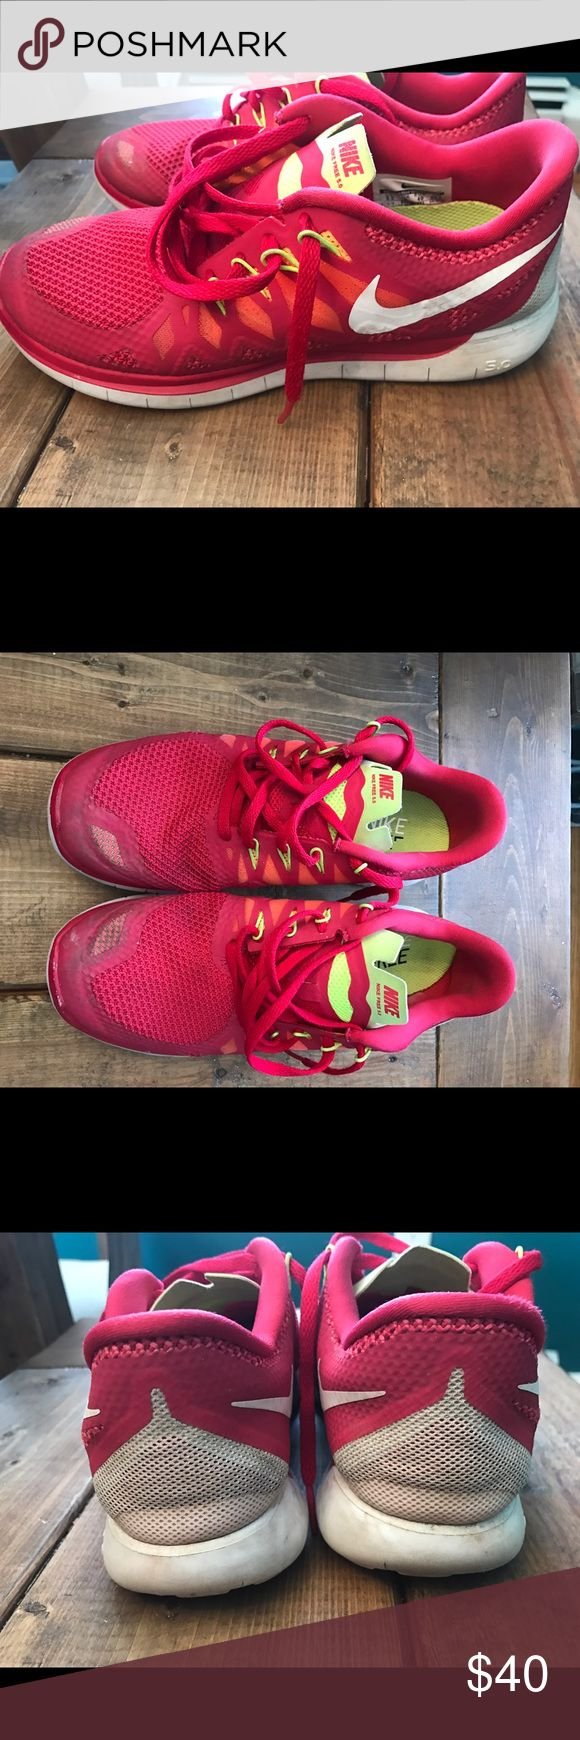 Nike Free 5.0 Runner Red with highlighter yellow accents. Used but good shape. Comfortable and stylish! None of my shoes fit after pregnancy. My loss, your gain! Nike Shoes Sneakers